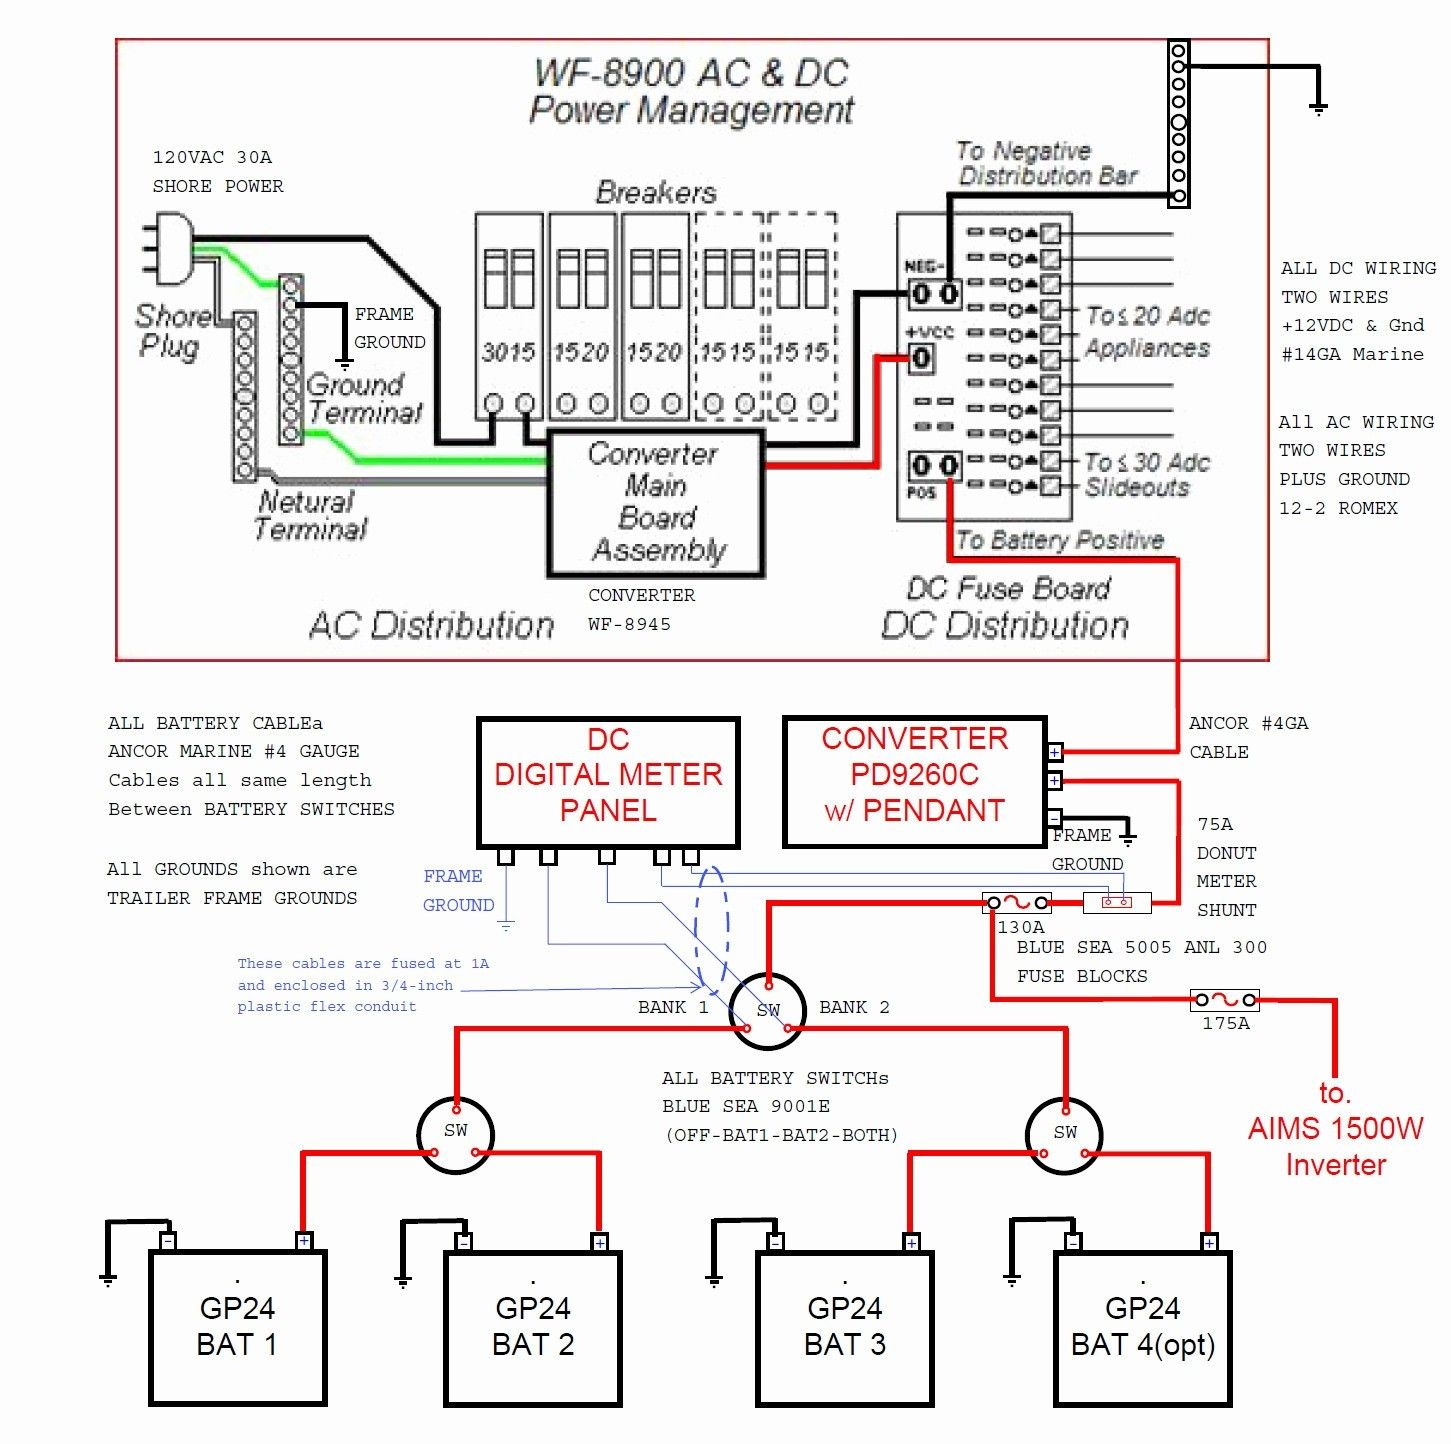 Wiring Diagram Online - Wiring Diagram Directory on john deere diagnostic codes, john deere parts diagrams, john deere radio wiring diagram, john deere ignition switch wiring, john deere parts specifications, john deere solenoid wiring, john deere solenoid schematics, john deere maintenance schedule,